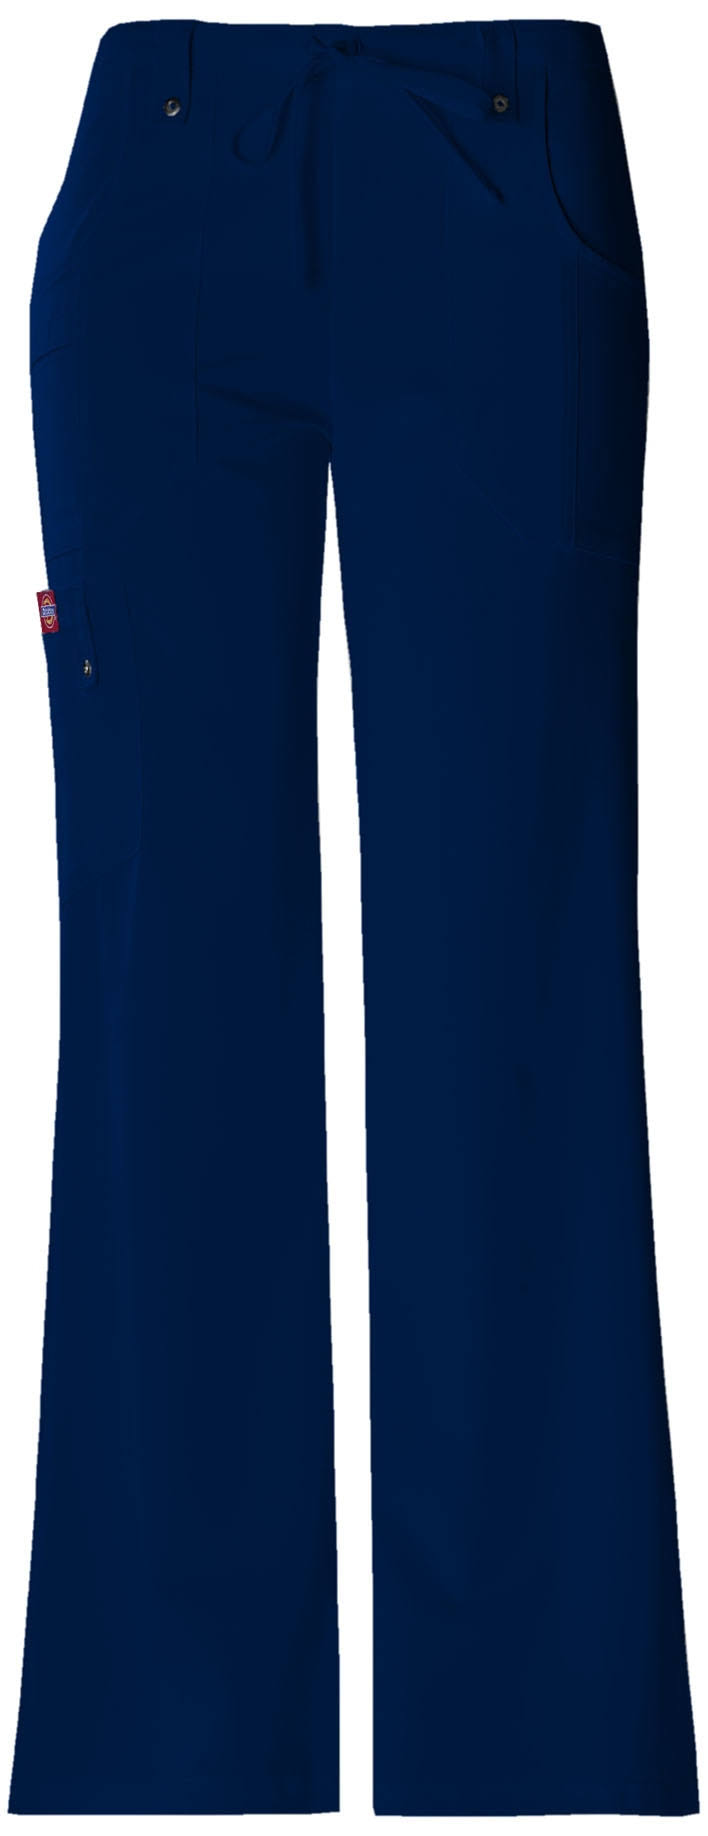 Dickies Womens Xtreme Stretch Fit Drawstring Flare Leg Pant - Navy, Medium Petite